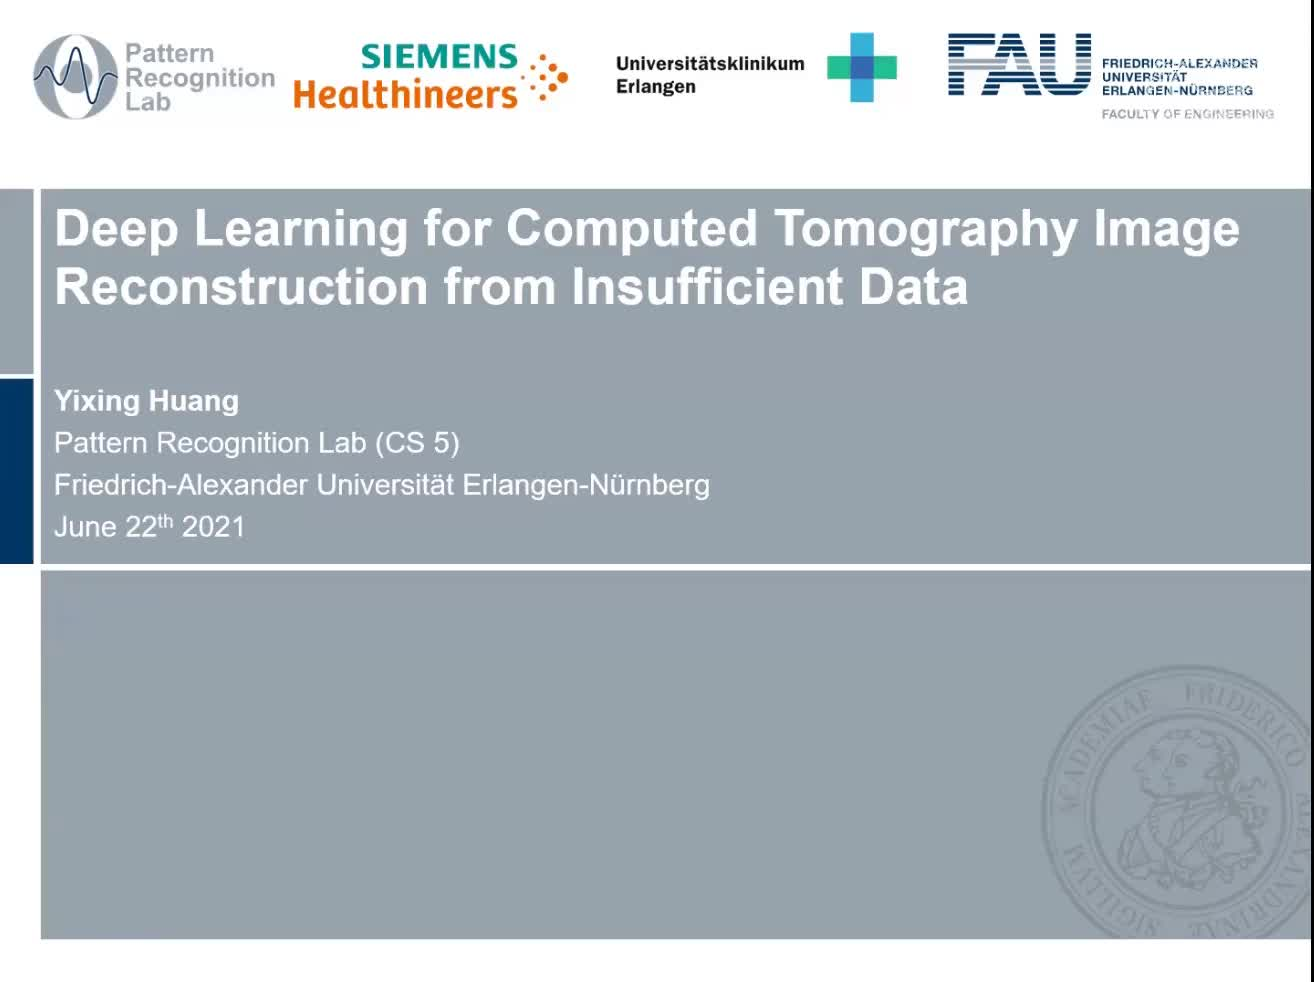 Deep Learning for Computed Tomography Image Reconstruction from Insufficient Data preview image